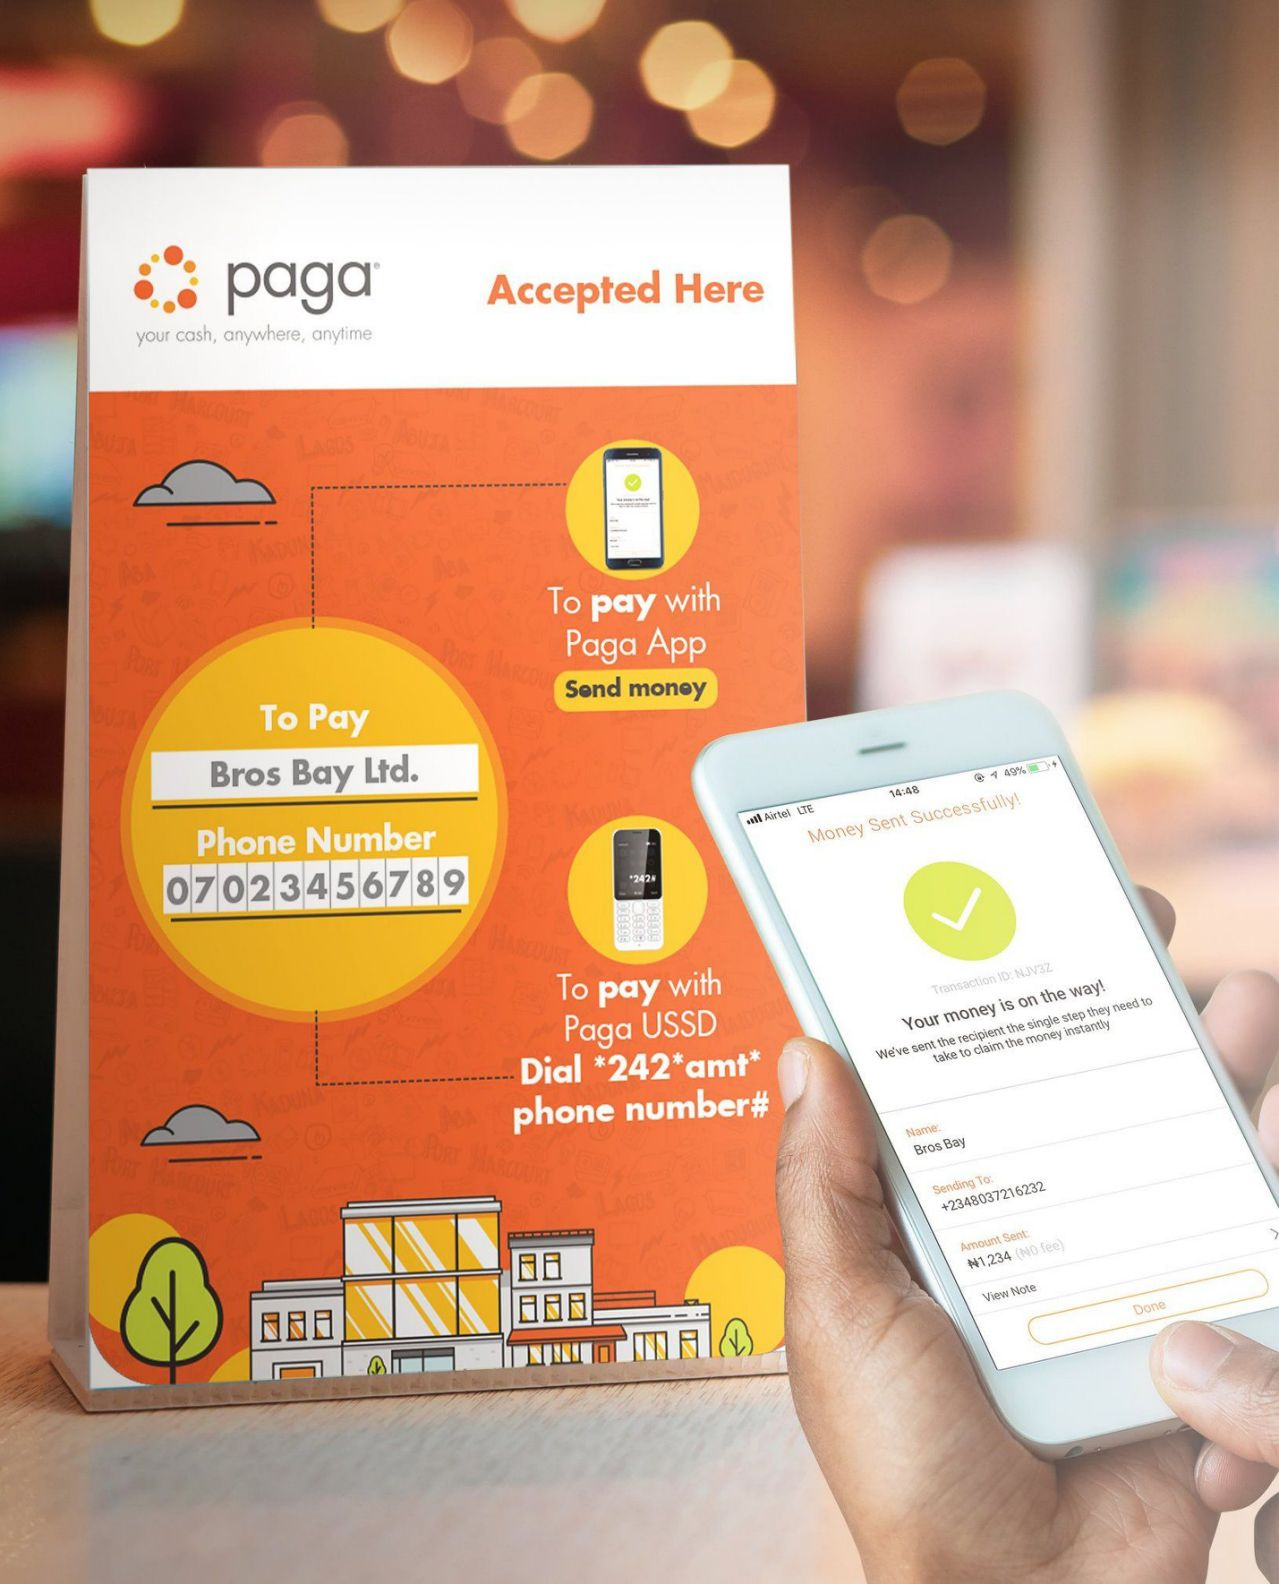 Visa partners with Paga on payments and fintech for Africa and abroad